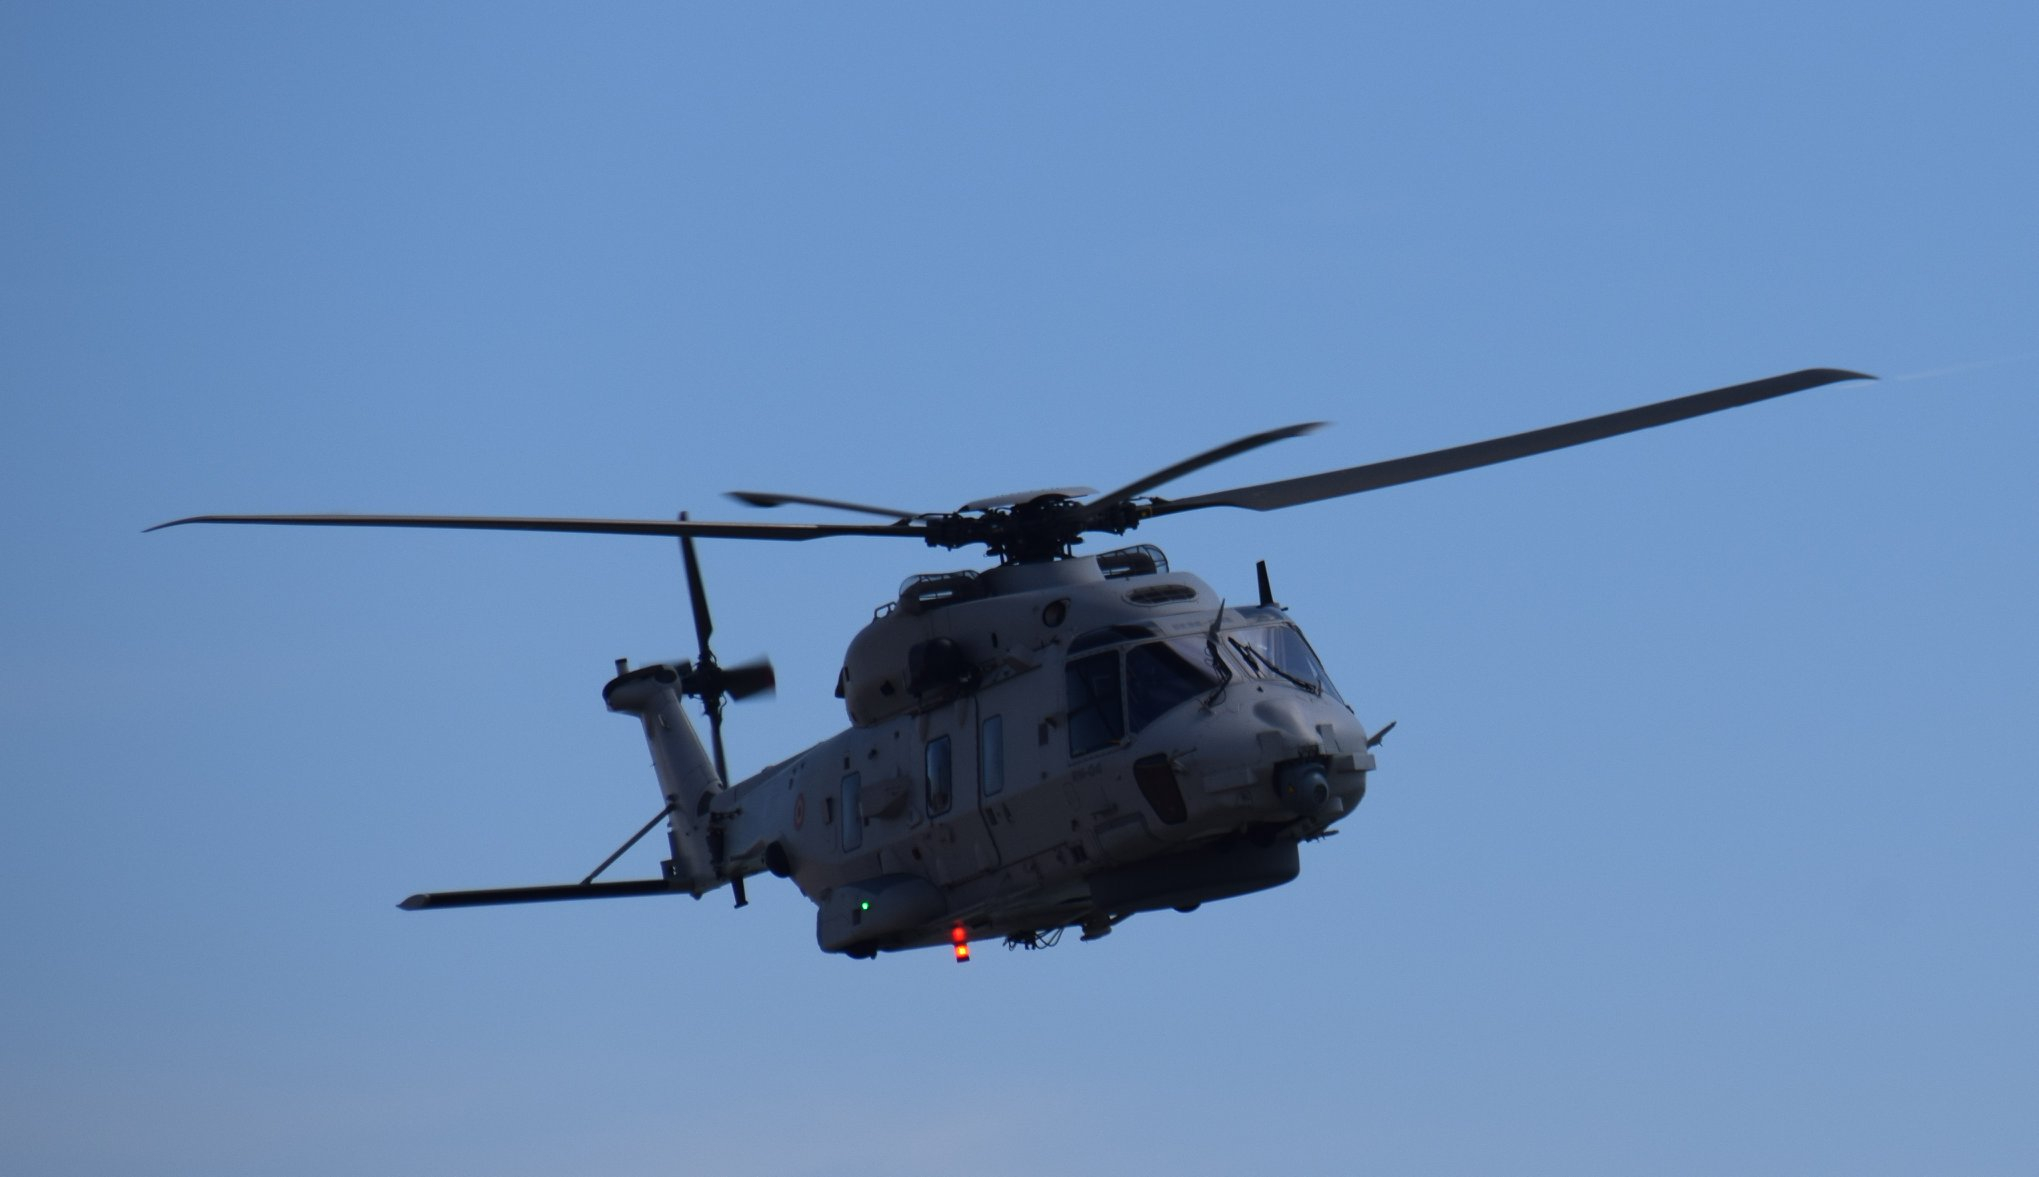 Search and rescue bij Vlissingen met NH 90